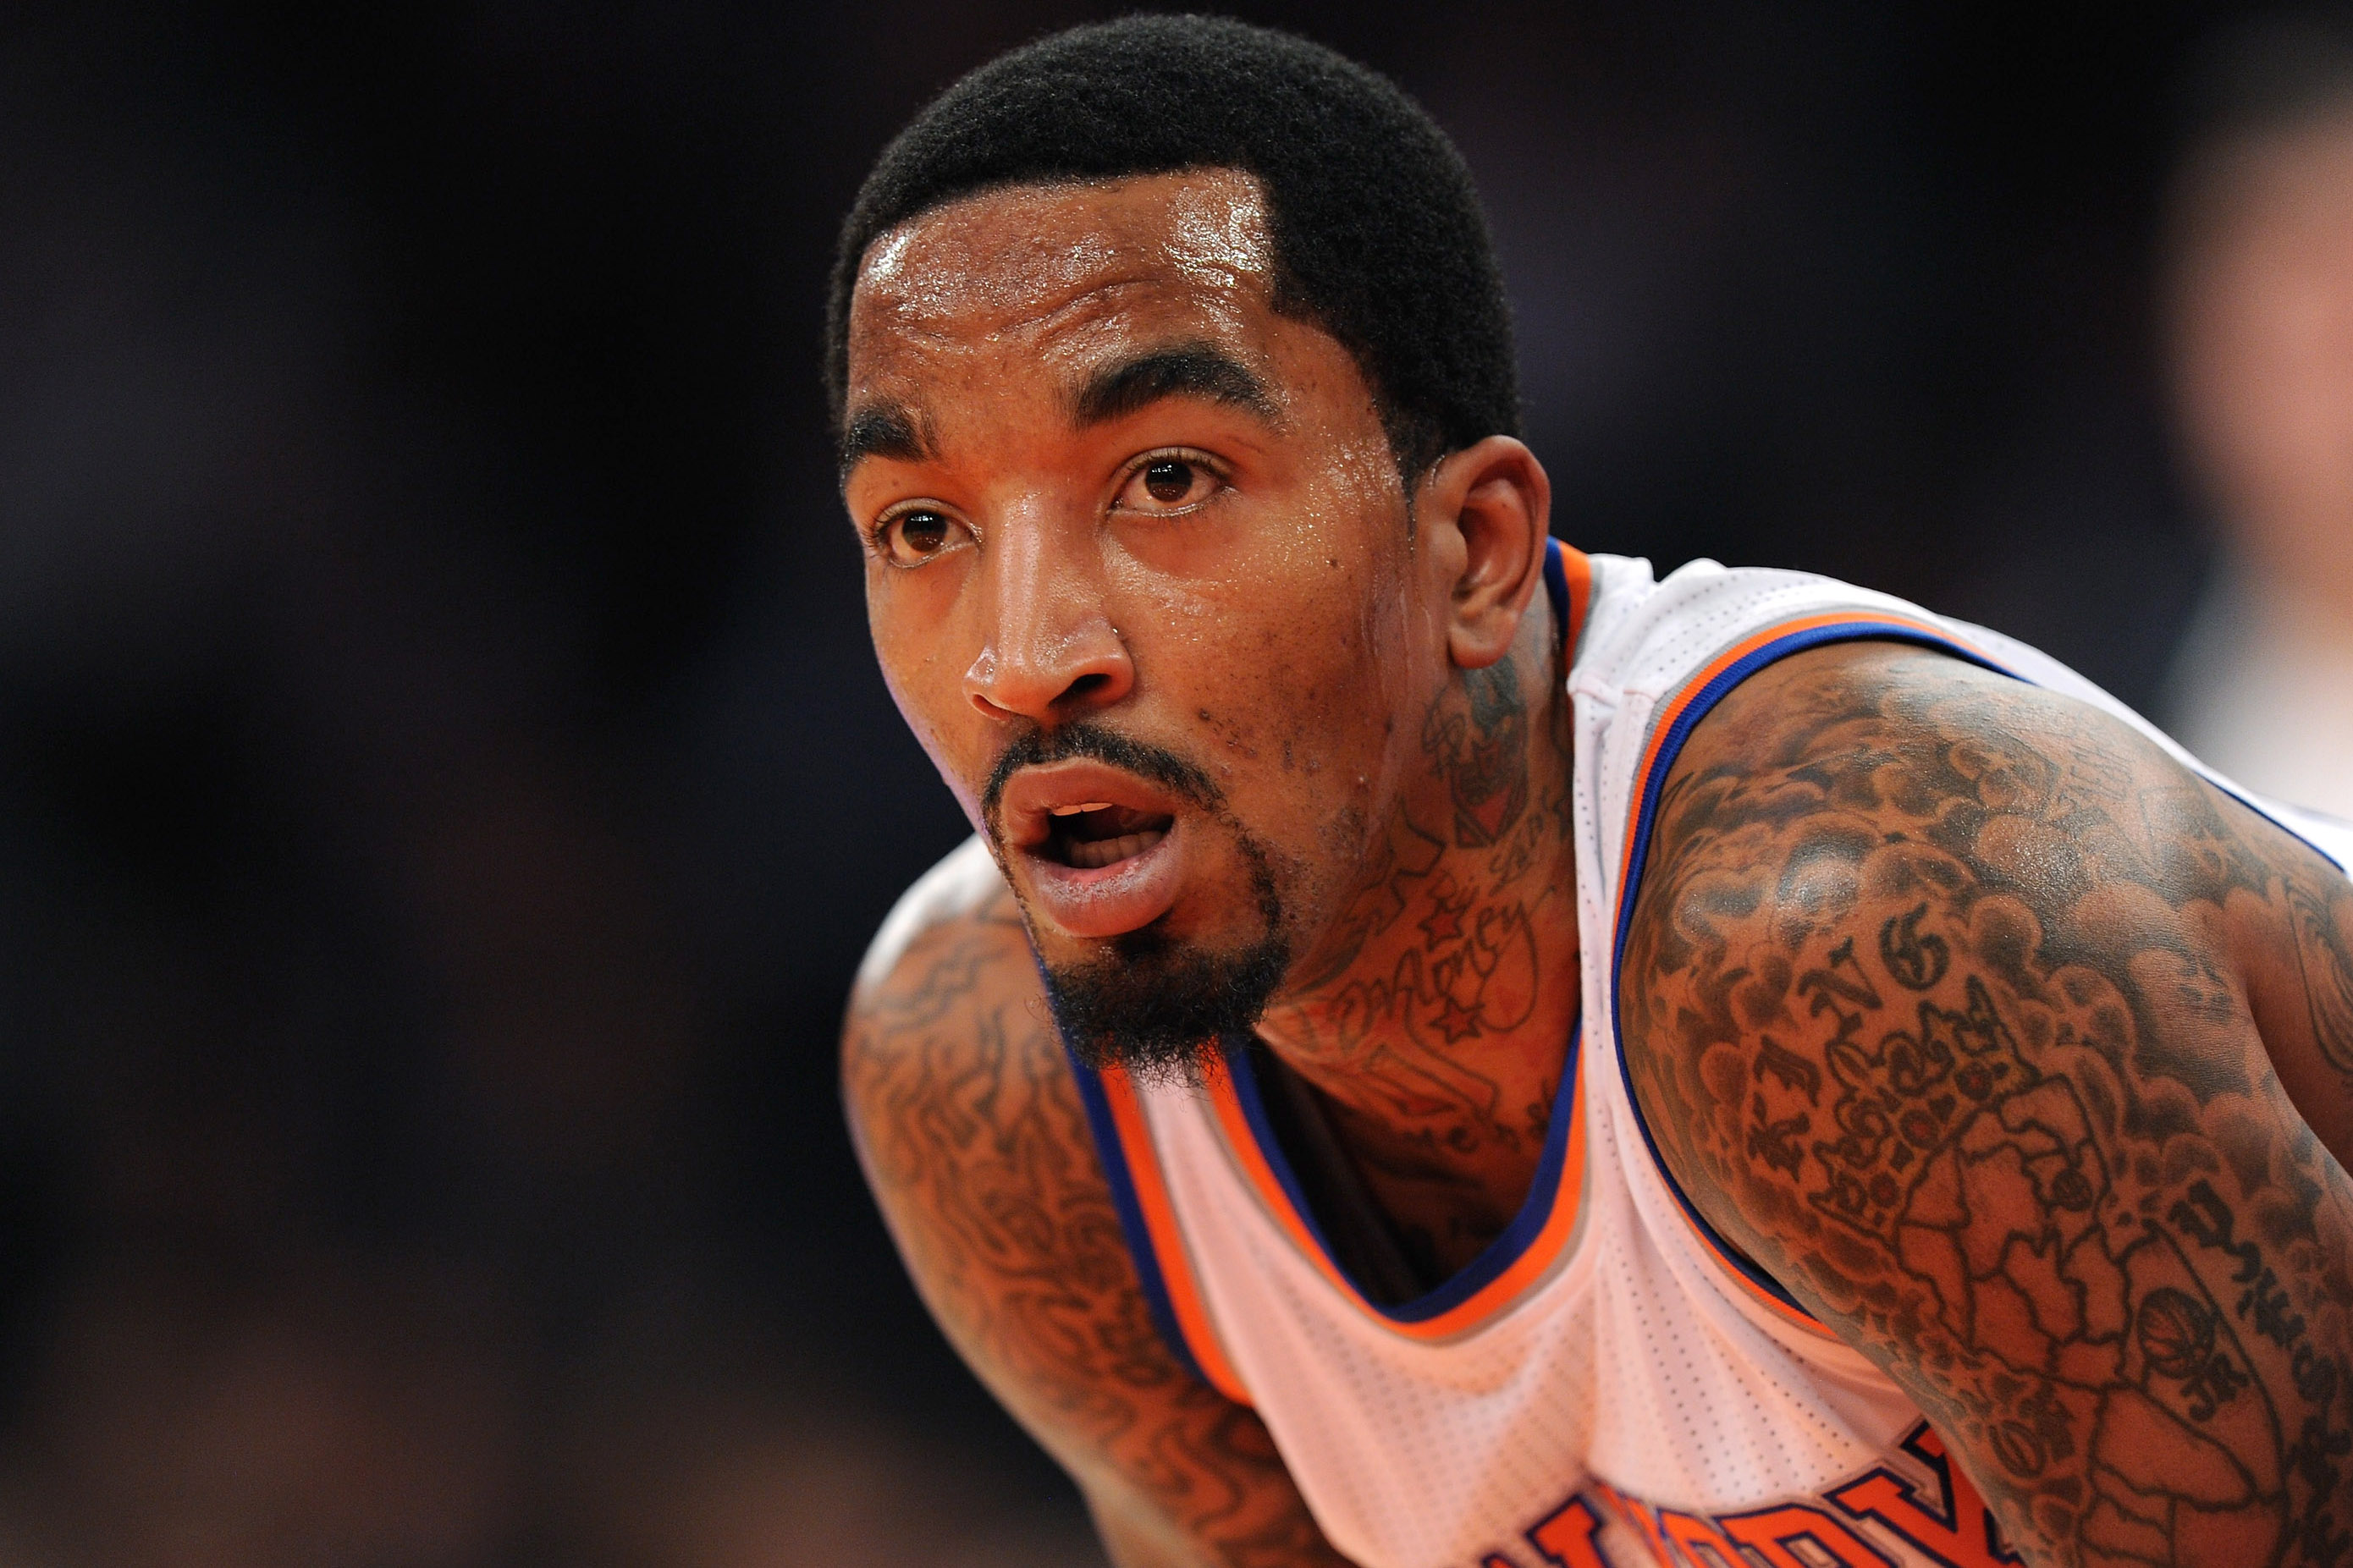 jr smith hairstyles the hippest pics